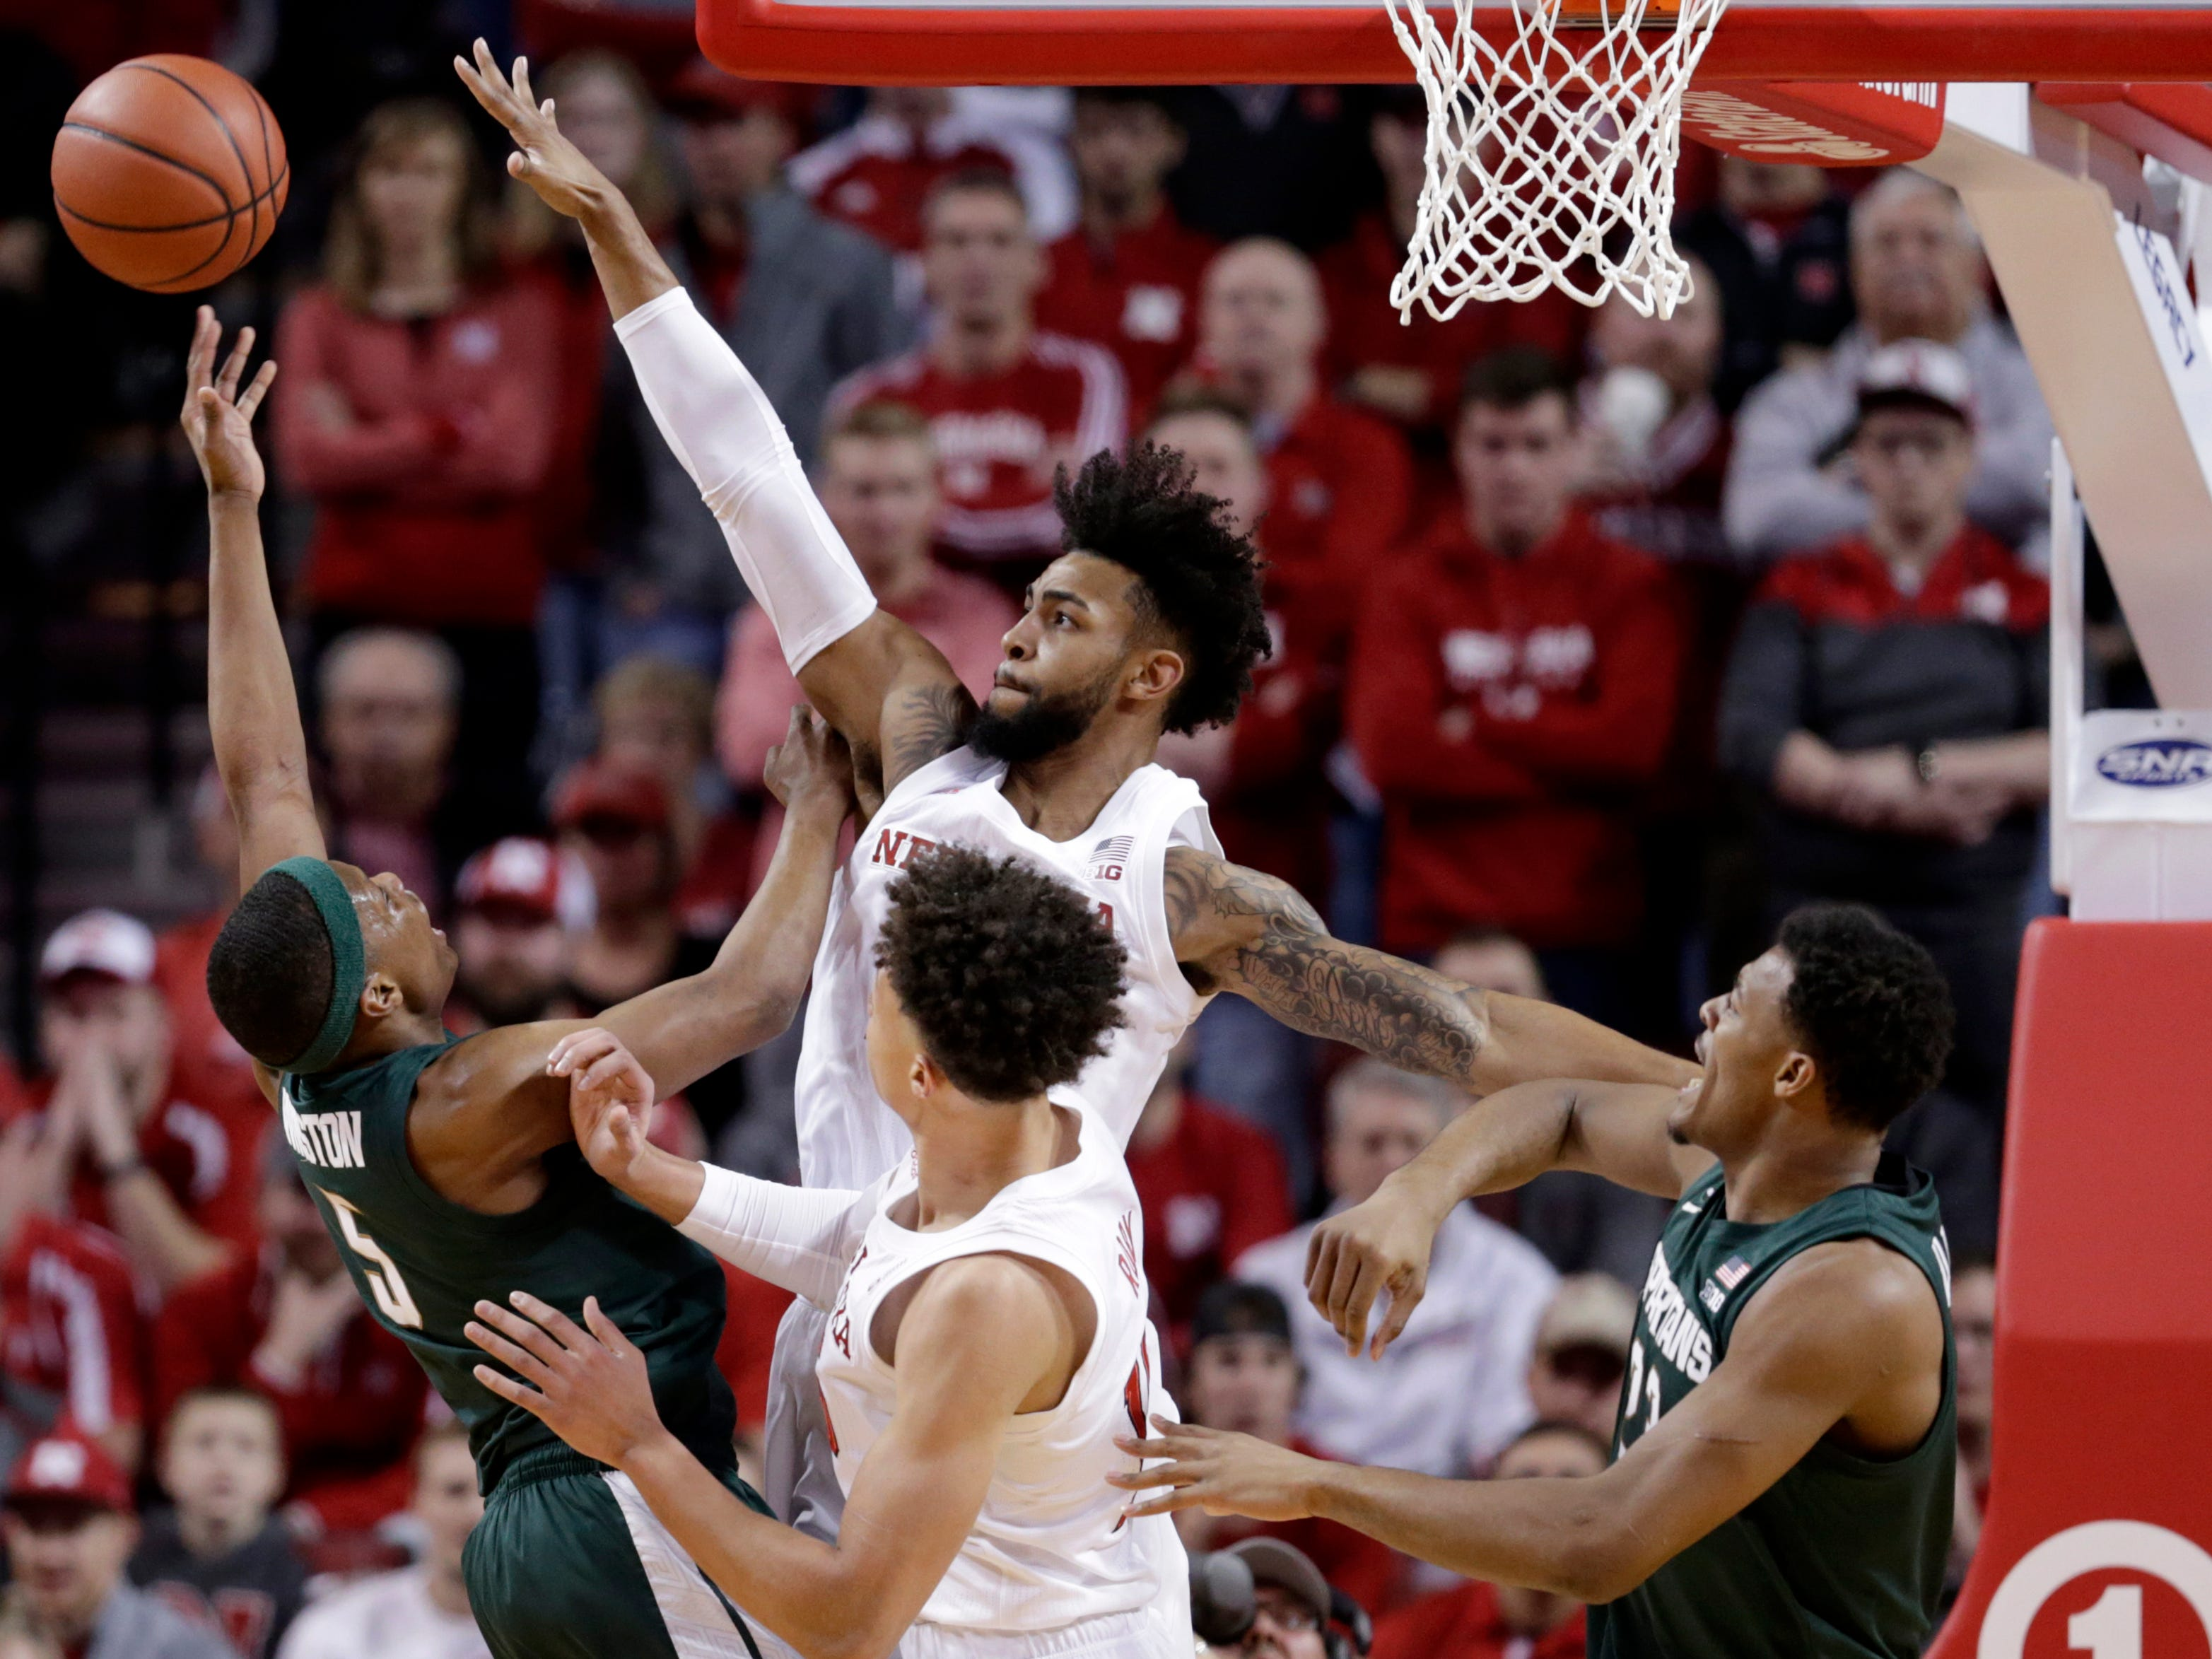 Nebraska's Isaac Copeland Jr., center rear, tries to block a shot by Michigan State's Cassius Winston (5), as Xavier Tillman, right, and Isaiah Roby, center front, watch, during the first half.